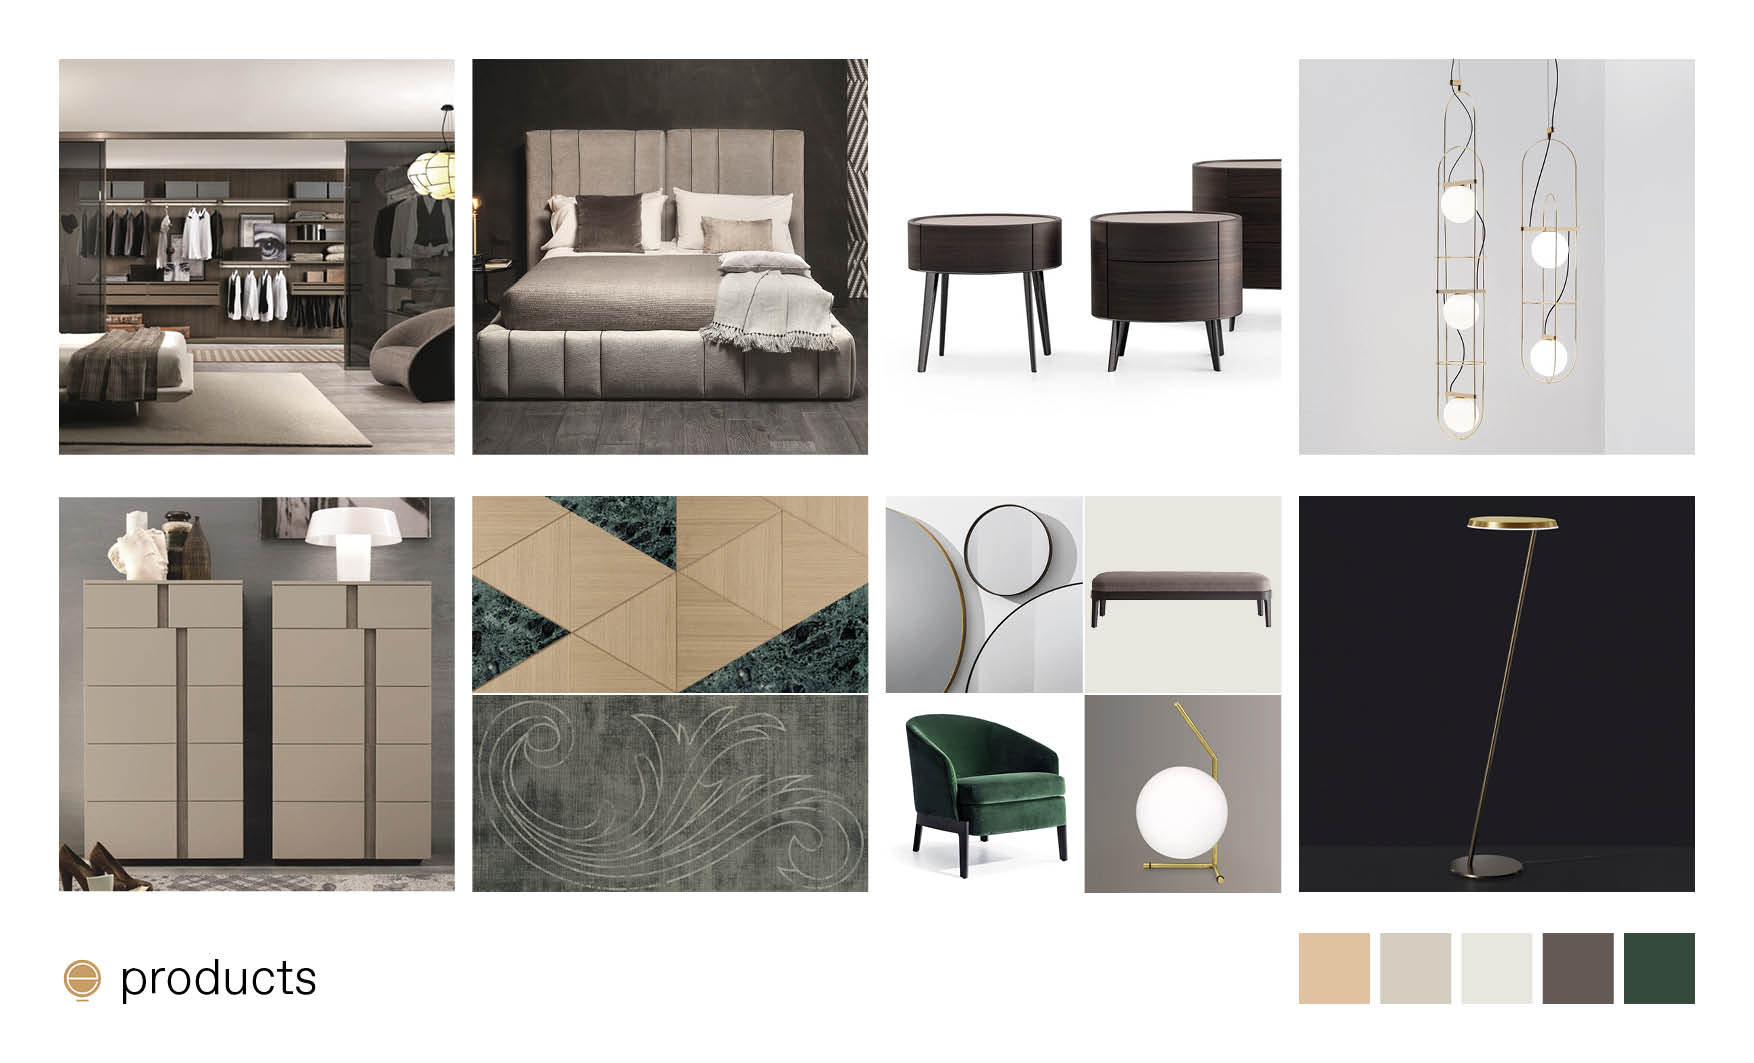 products moodboard of luxury Italian bedroom furniture made by Esperiri